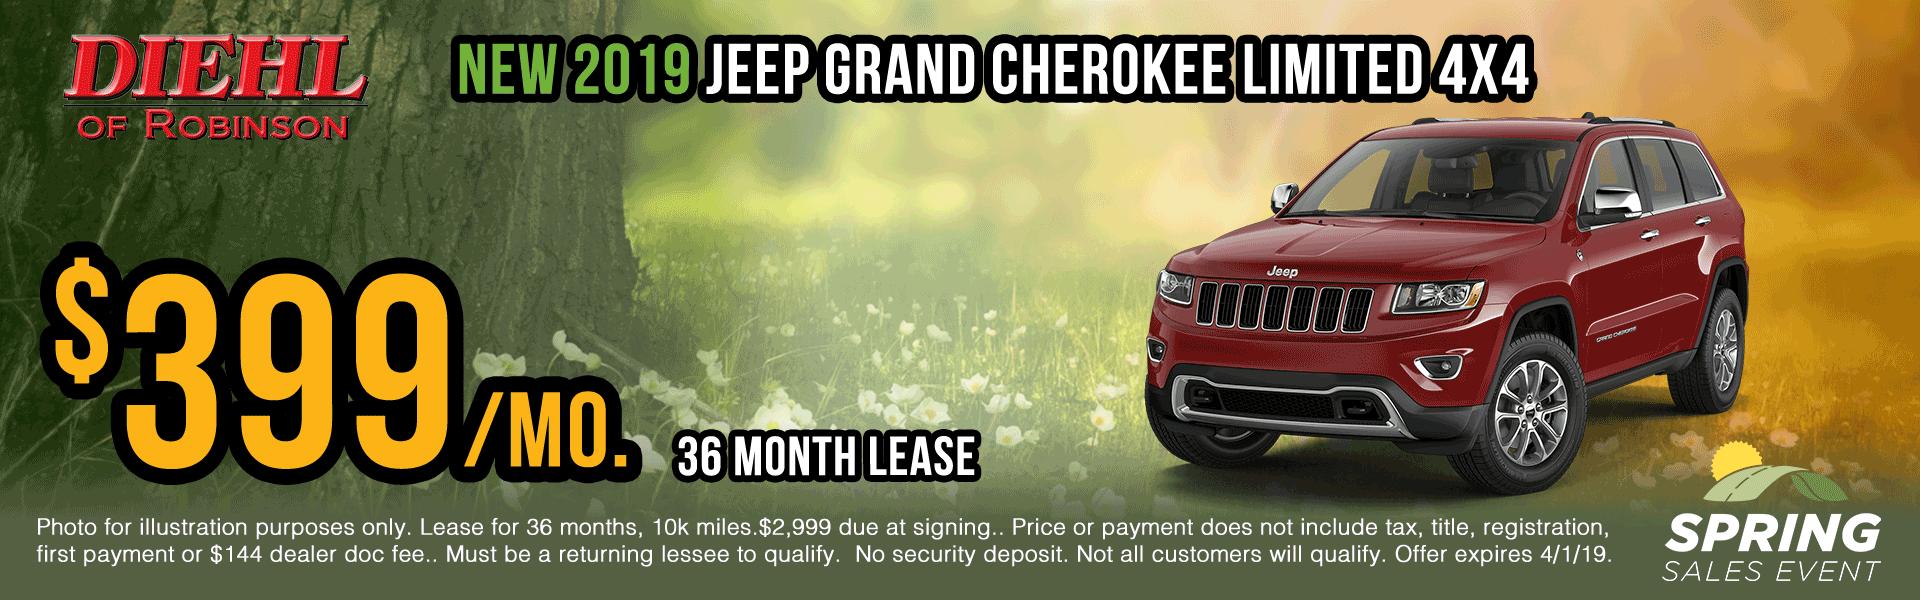 19J1049-2019-jeep-grand-cherokee-limited lease specials Spring sales event jeep specials Chrysler specials ram specials dodge specials mopar specials new vehicle specials Diehl automotive Diehl Robinson Diehl of Robinson specials